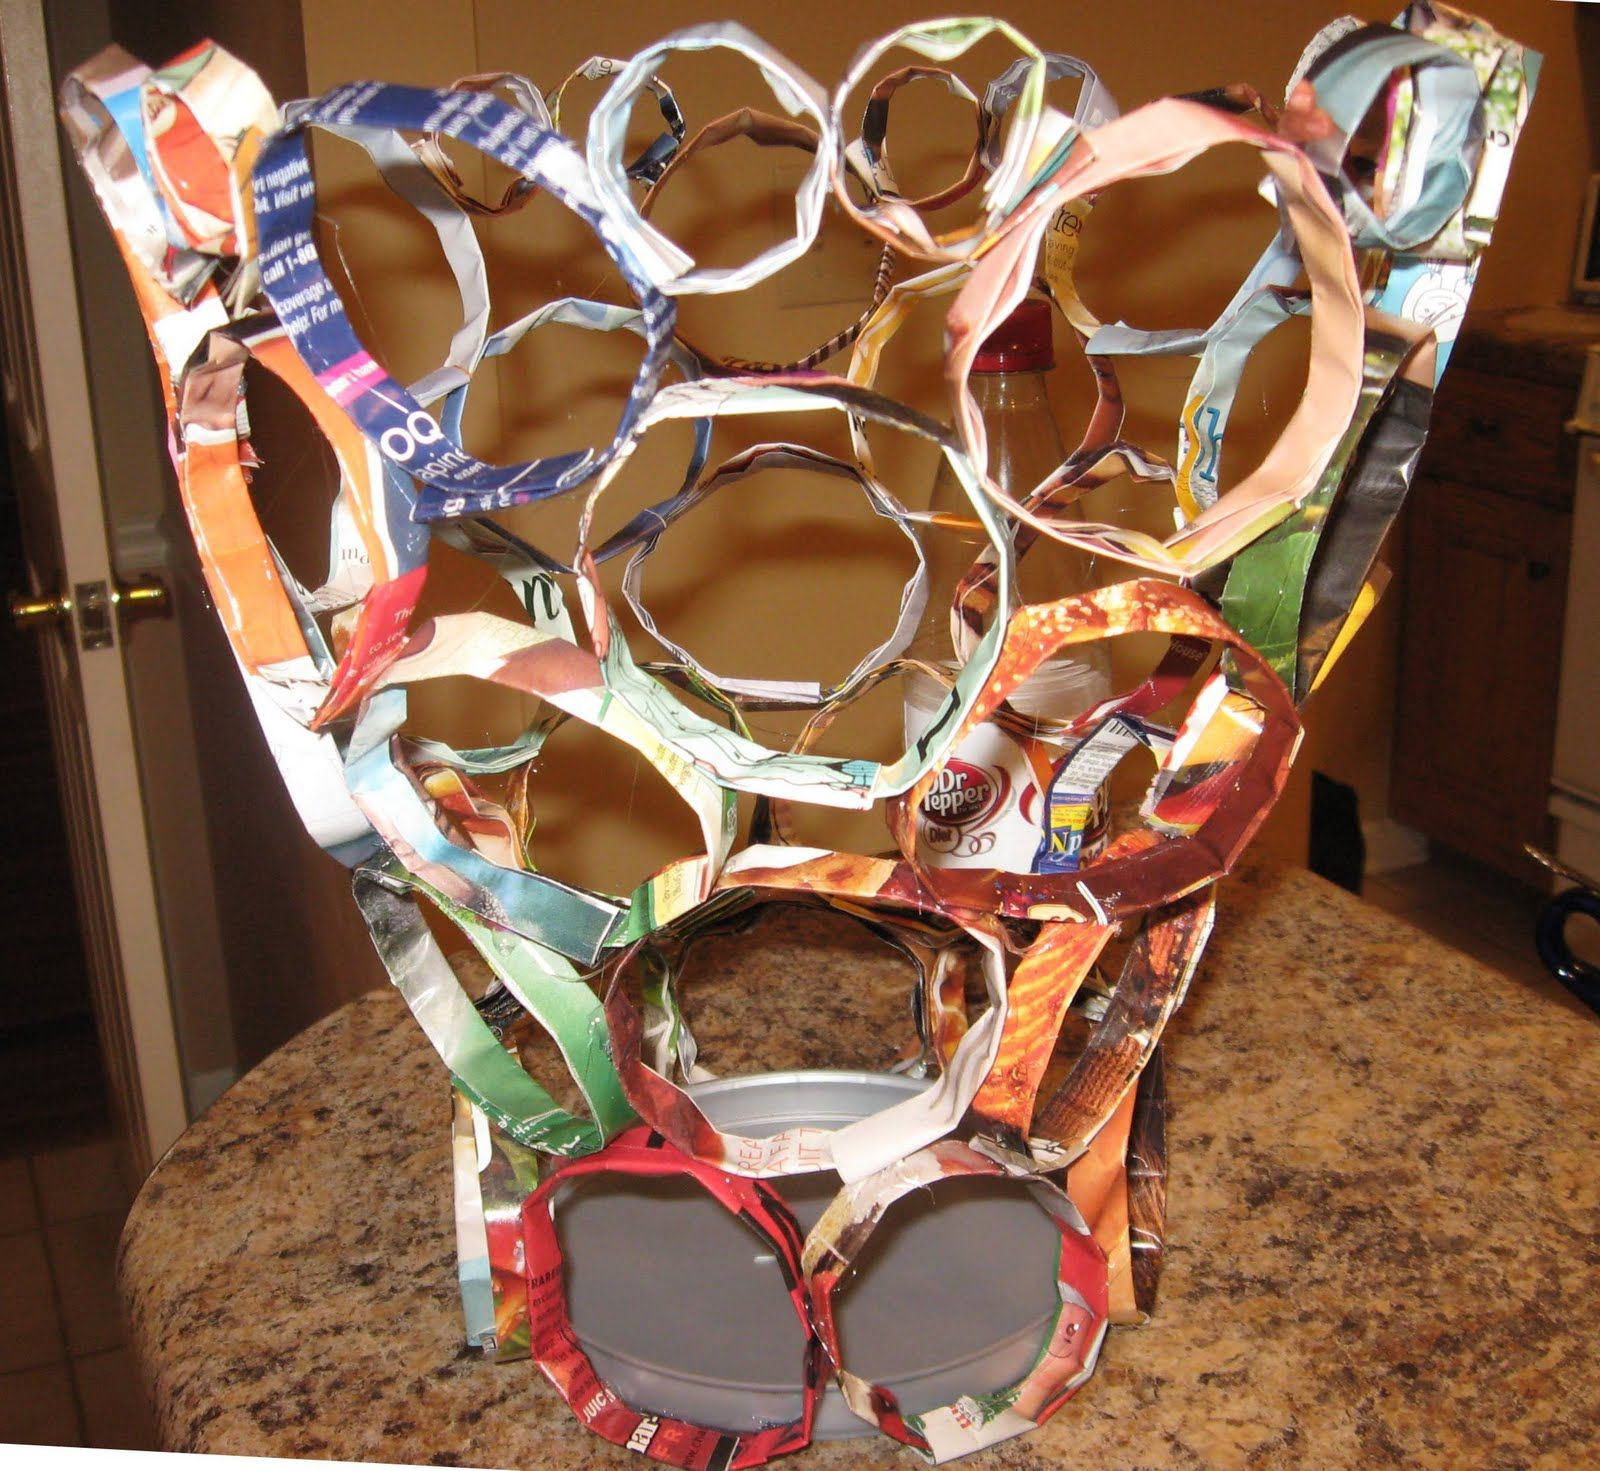 Art projects for teens creative recycled projects for Art from waste ideas for kids